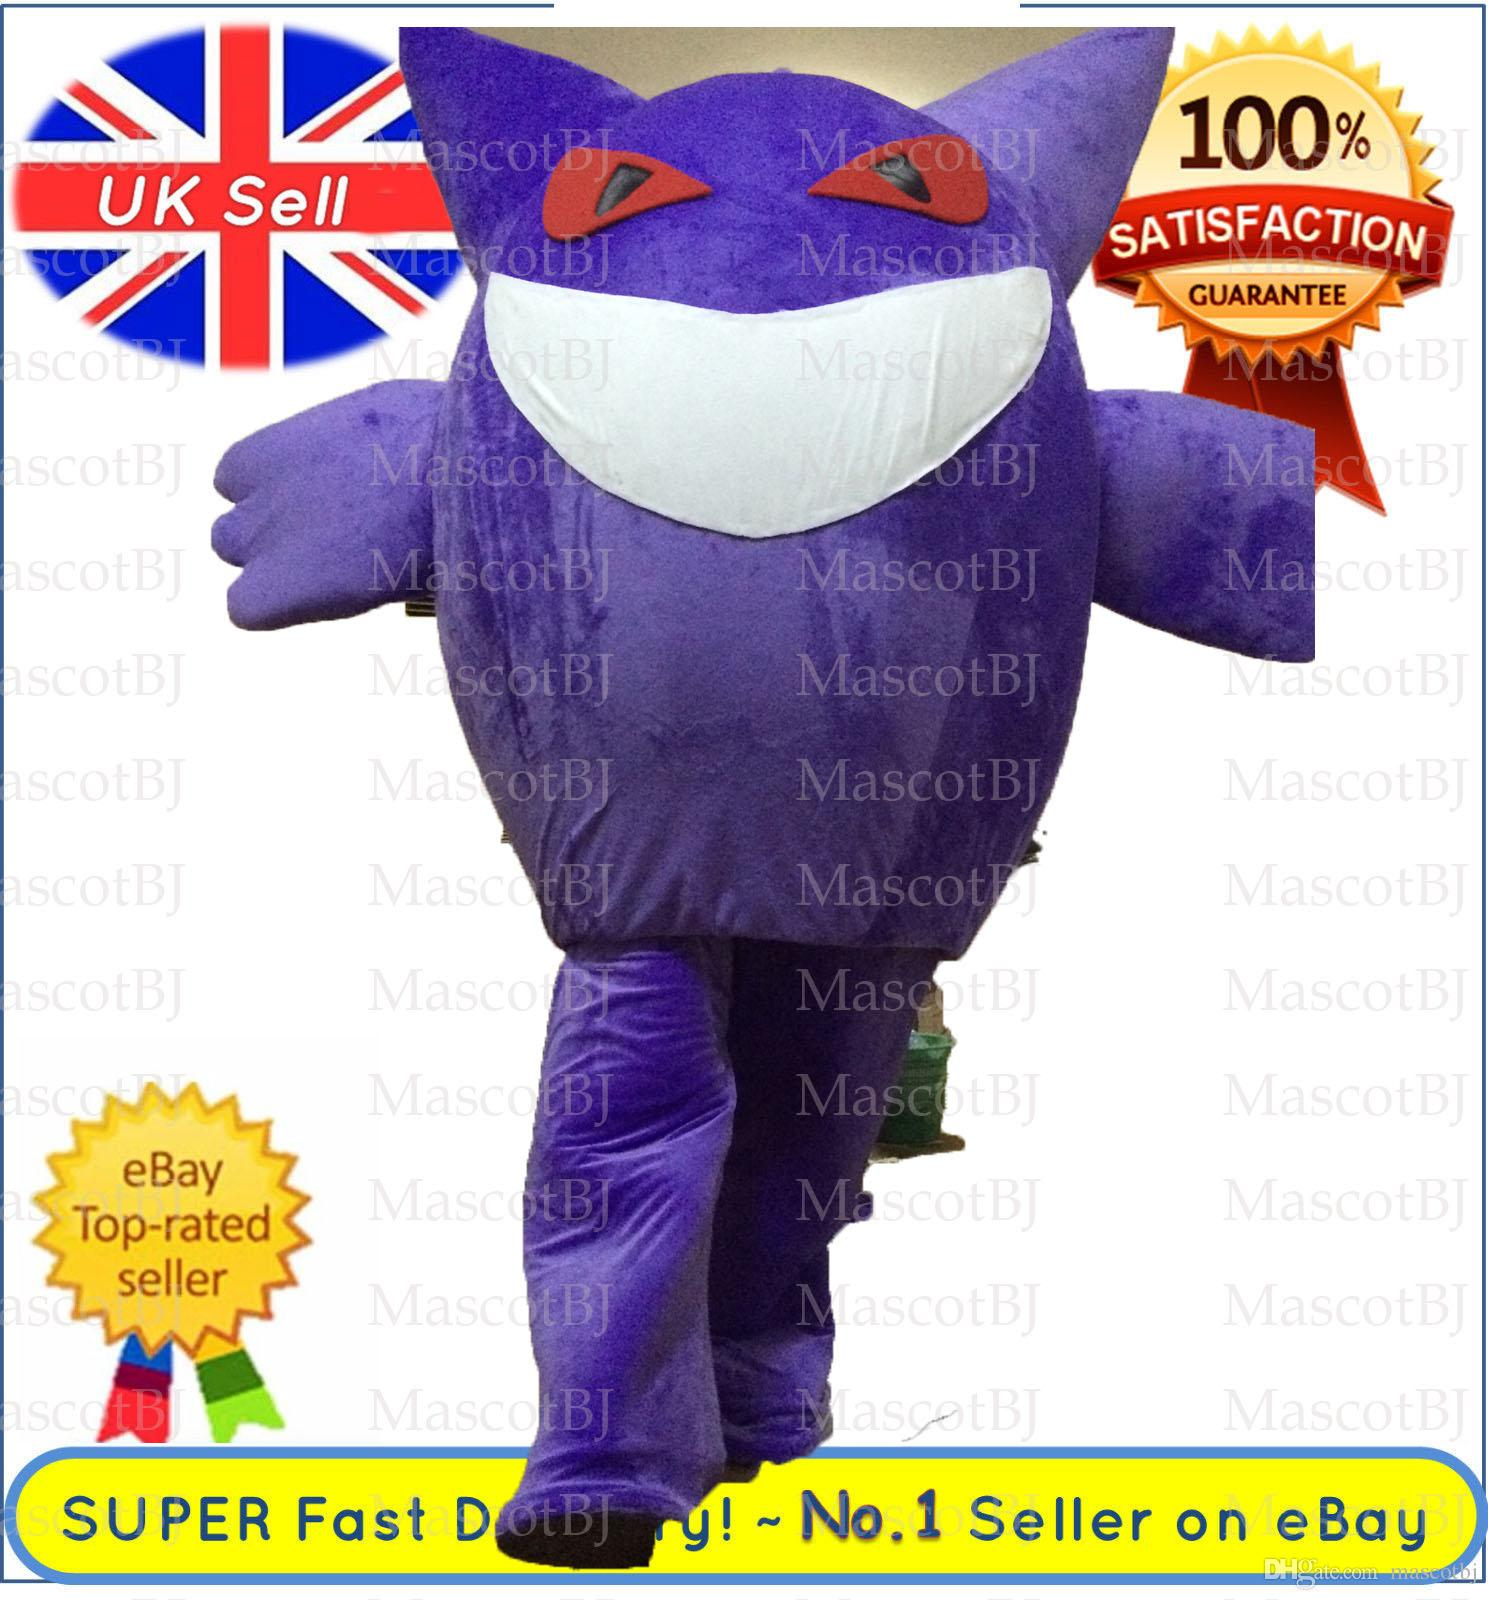 Gengar Pokemons Pikachu Hot Mascot Costume Complete 001 Outfit Rental Mascot Costumes College Mascot Costume From Mascotbj $1.0| Dhgate.Com  sc 1 st  DHgate.com & Gengar Pokemons Pikachu Hot Mascot Costume Complete 001 Outfit ...